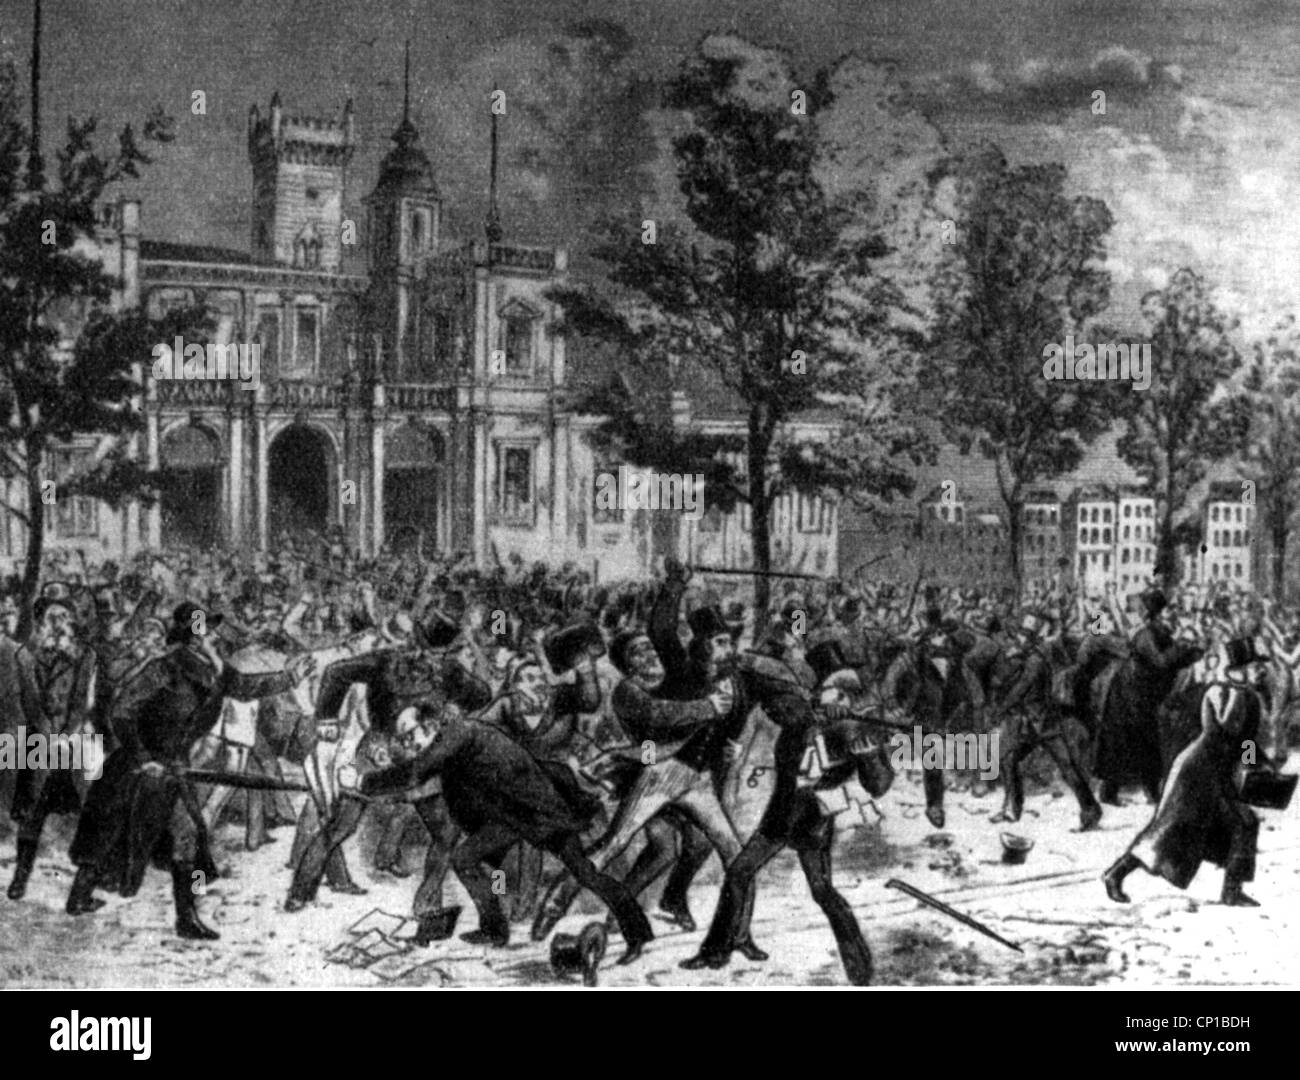 economic crisis 1873, stock market crash in Vienna, 9.5.1873, upset crowd  in front of the stock exchange building, contemporary illustration,  violence, ...